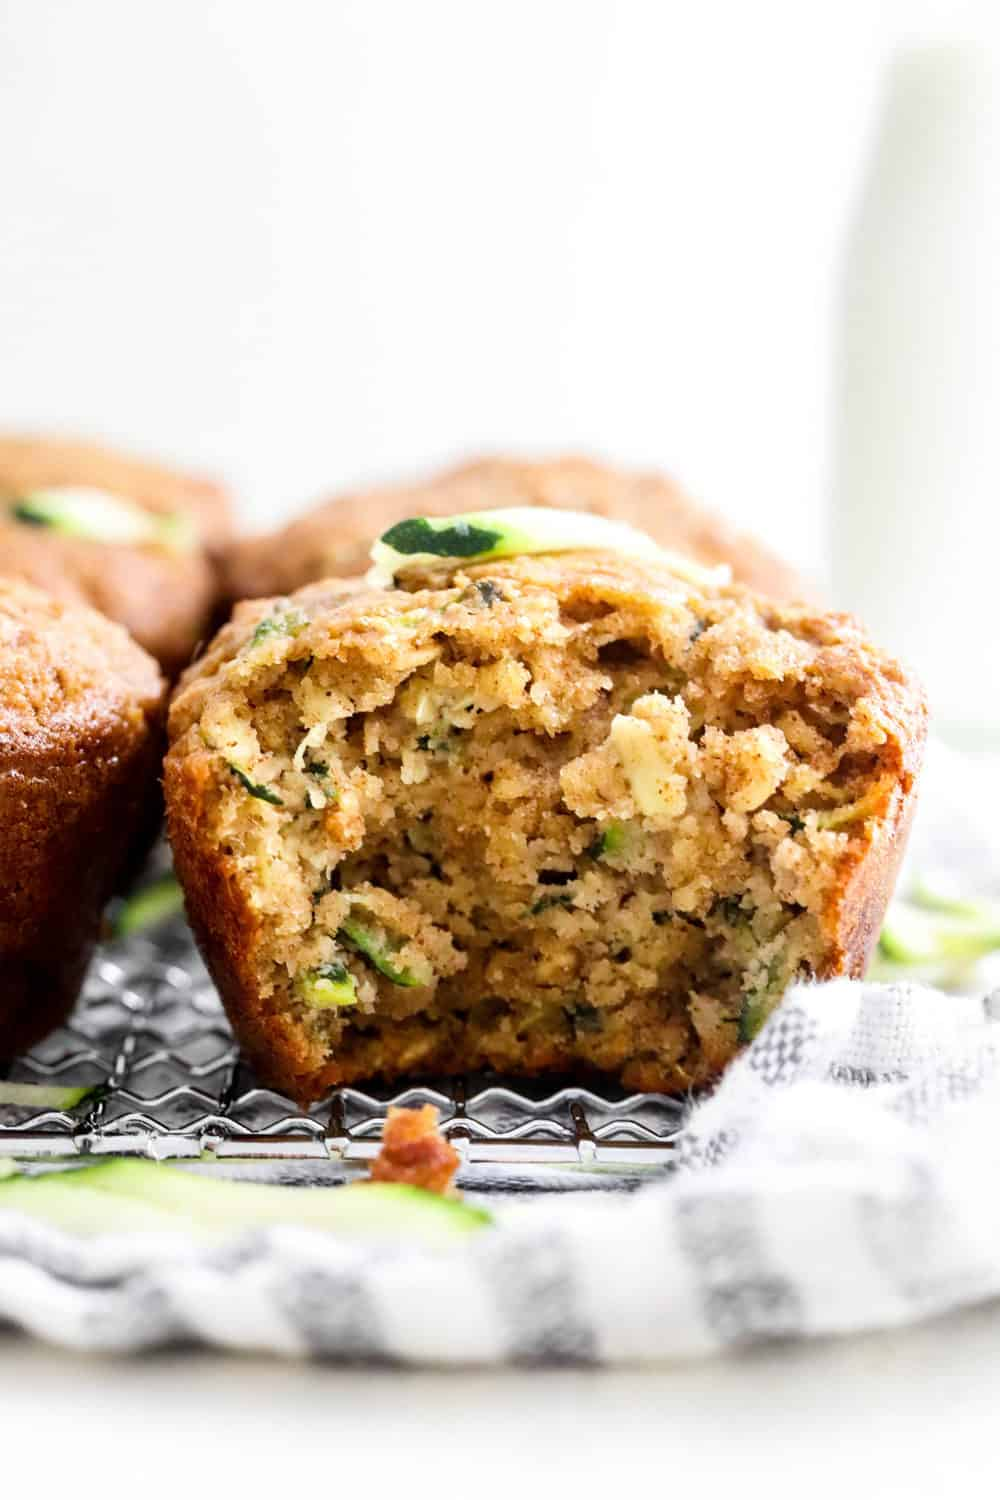 Close up of a zucchini muffin with a bite taken out of it with more muffins next to it sitting on top of a wire rack with a striped kitchen towel underneath it.